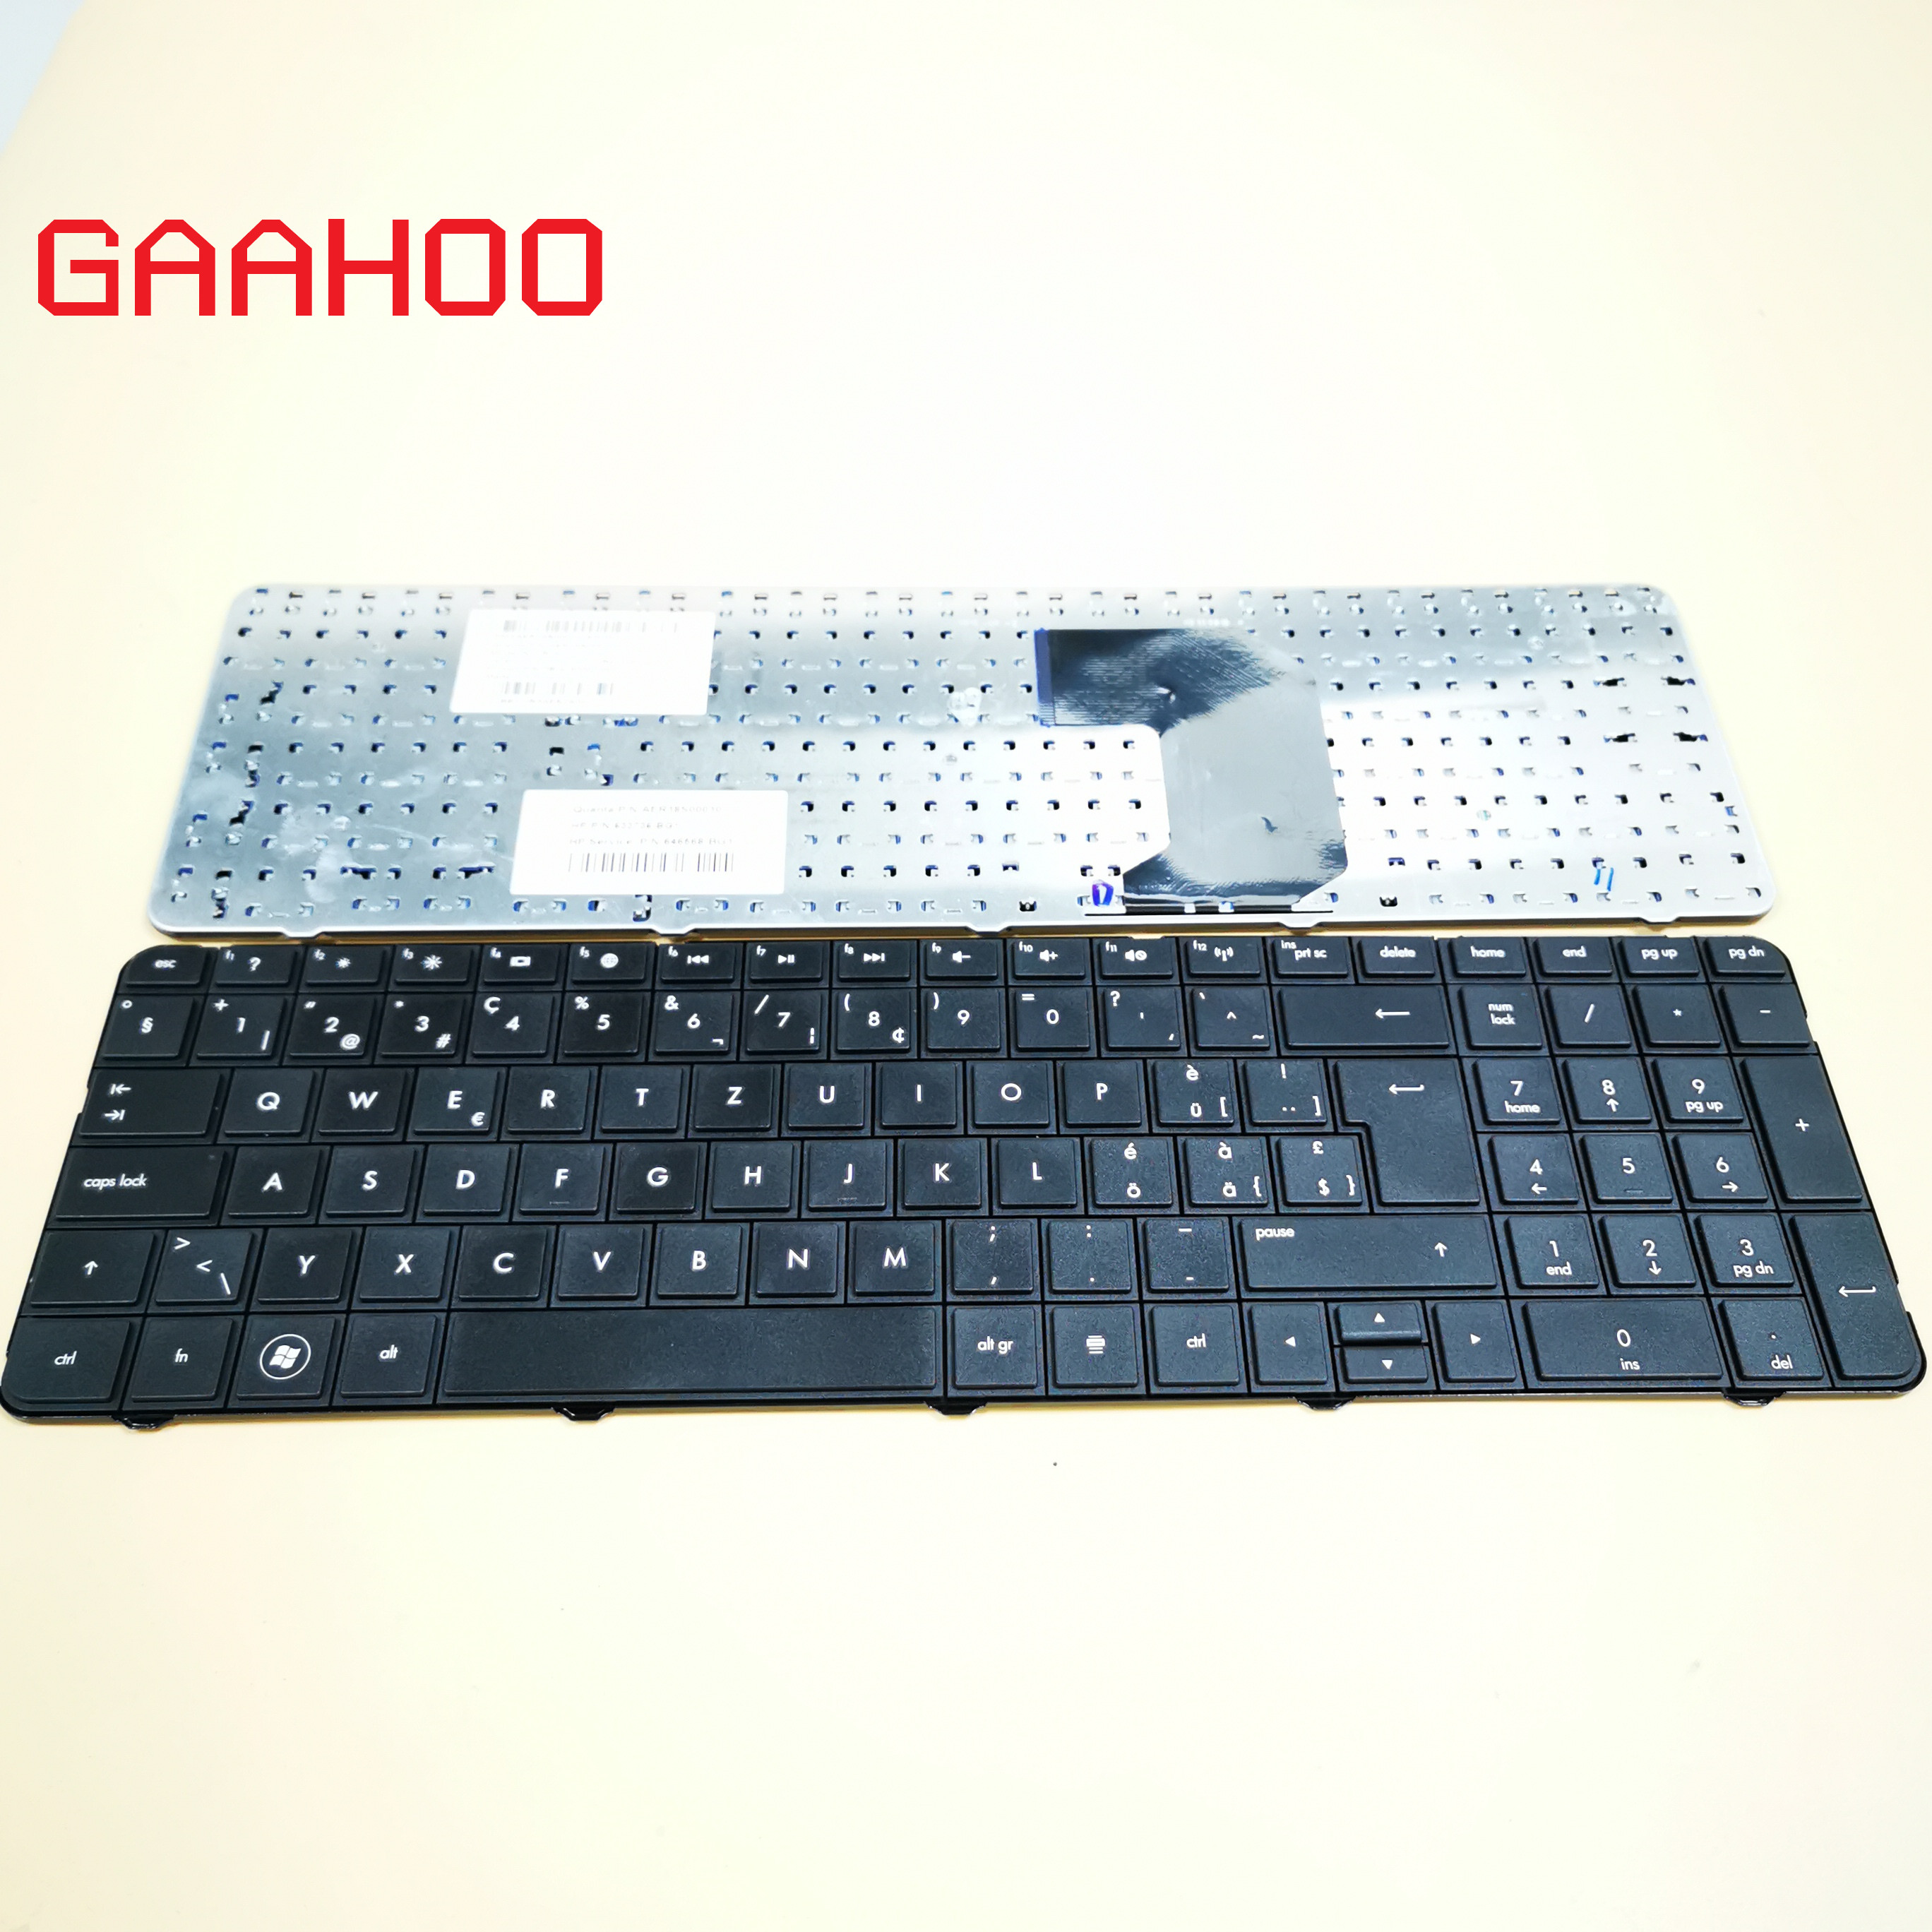 Brand New Original  SW/CH SWISS Keyboard For HP Pavilion G7-1000 G7-1100 G7-1200 G7-1001 G7-1222 G7-1001XX G7-1075DX Laptop